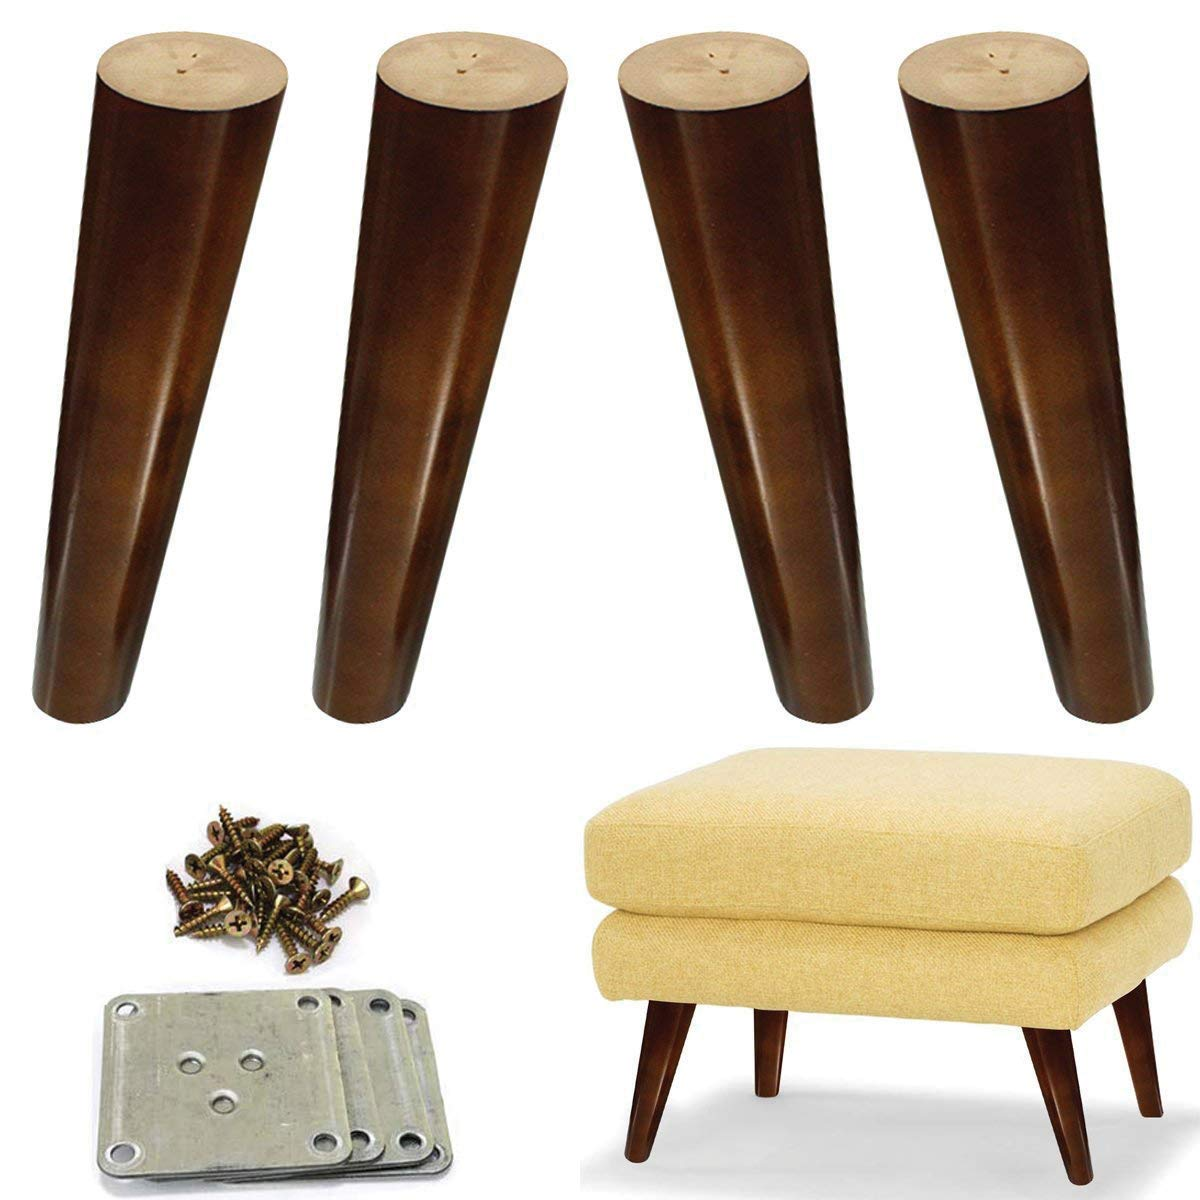 Wood Sofa Legs 8 Inch Pack Of 4 Walnut Finished Furniture Feet